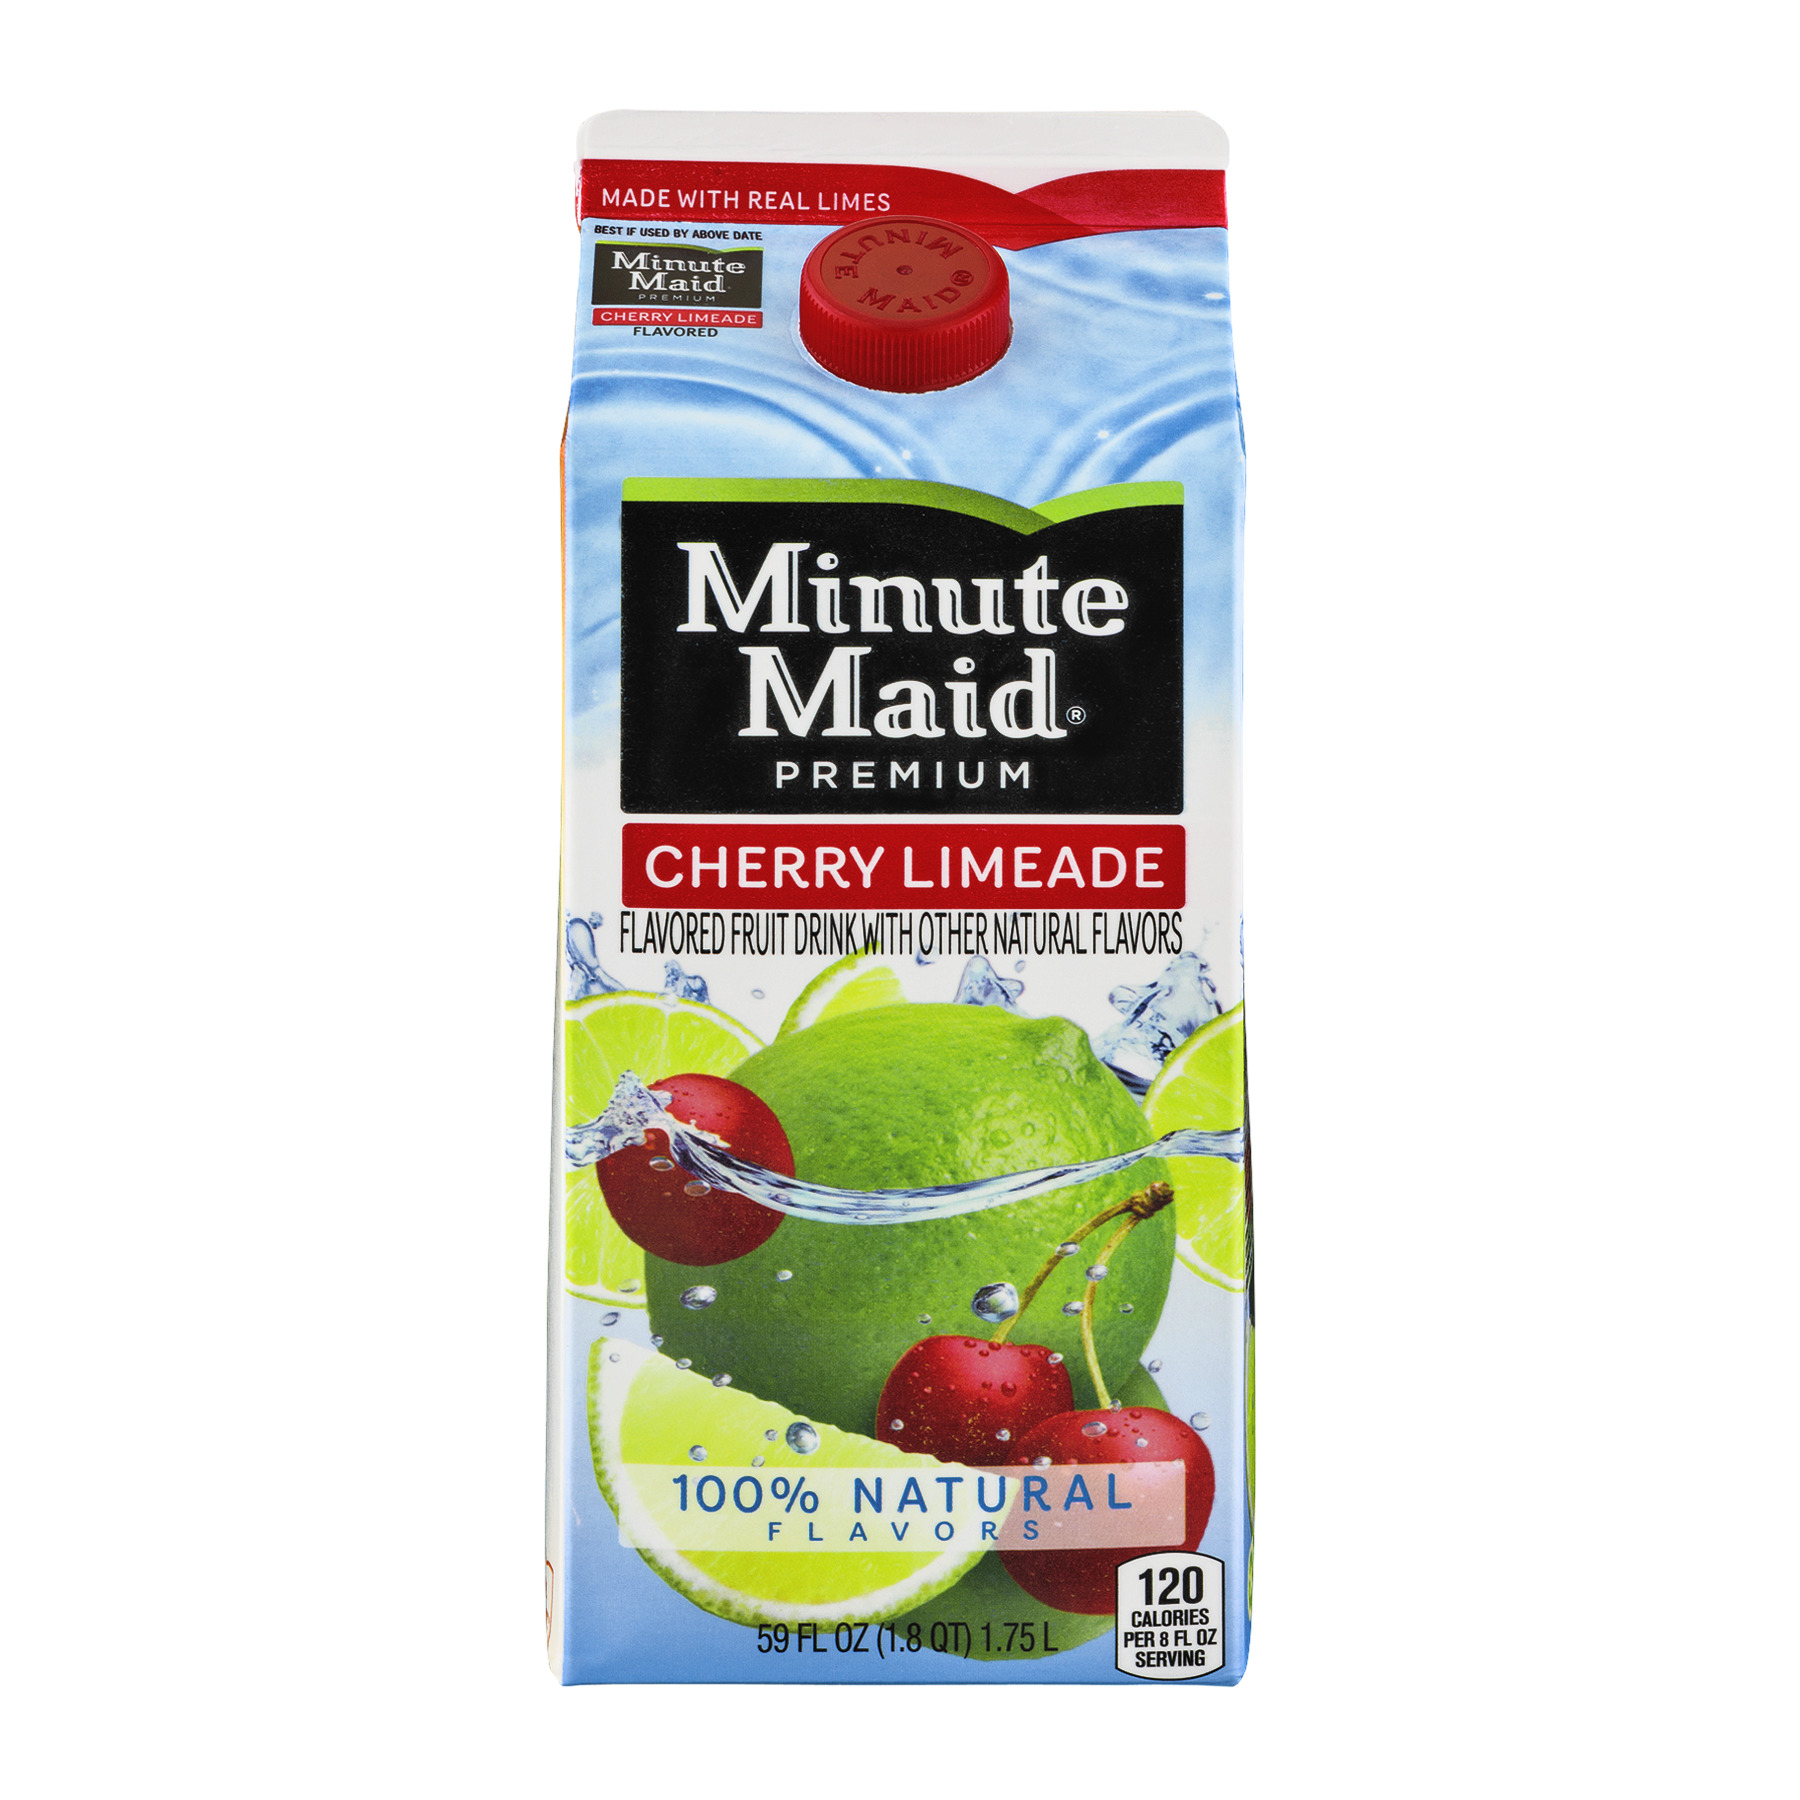 Minute Maid Premium Cherry Limeade, 59.0 FL OZ